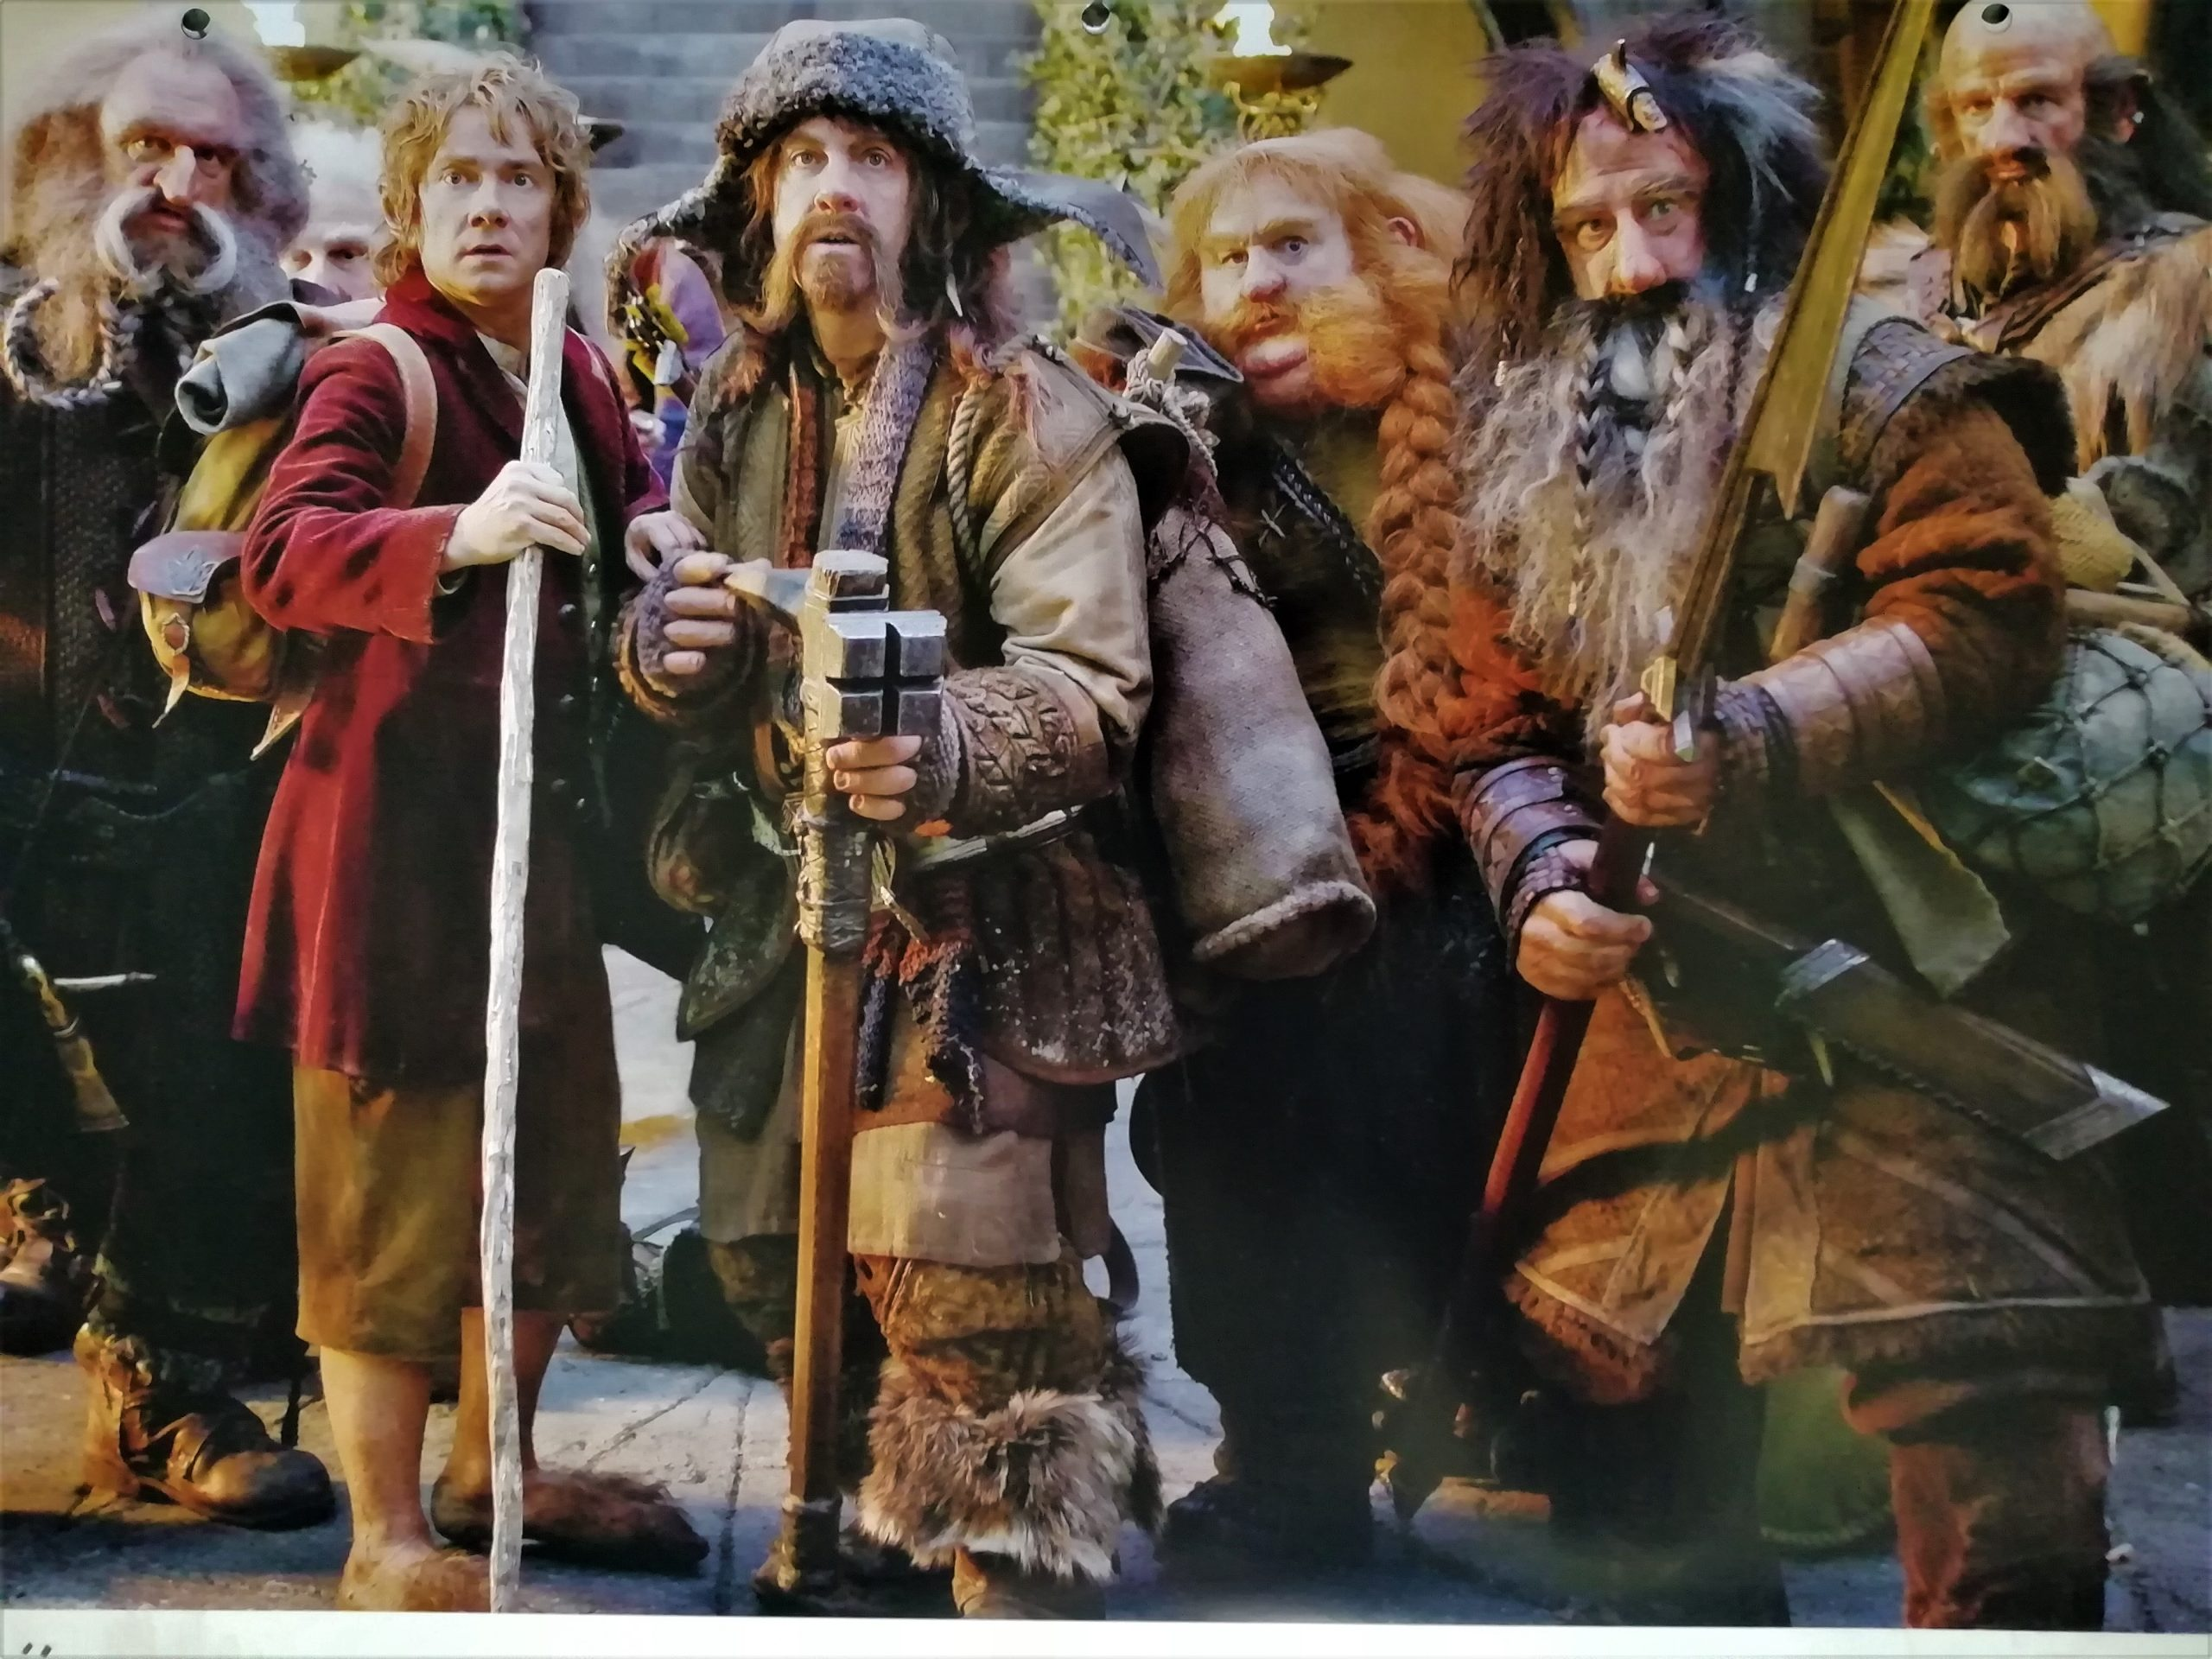 Dwarves in Rivendell